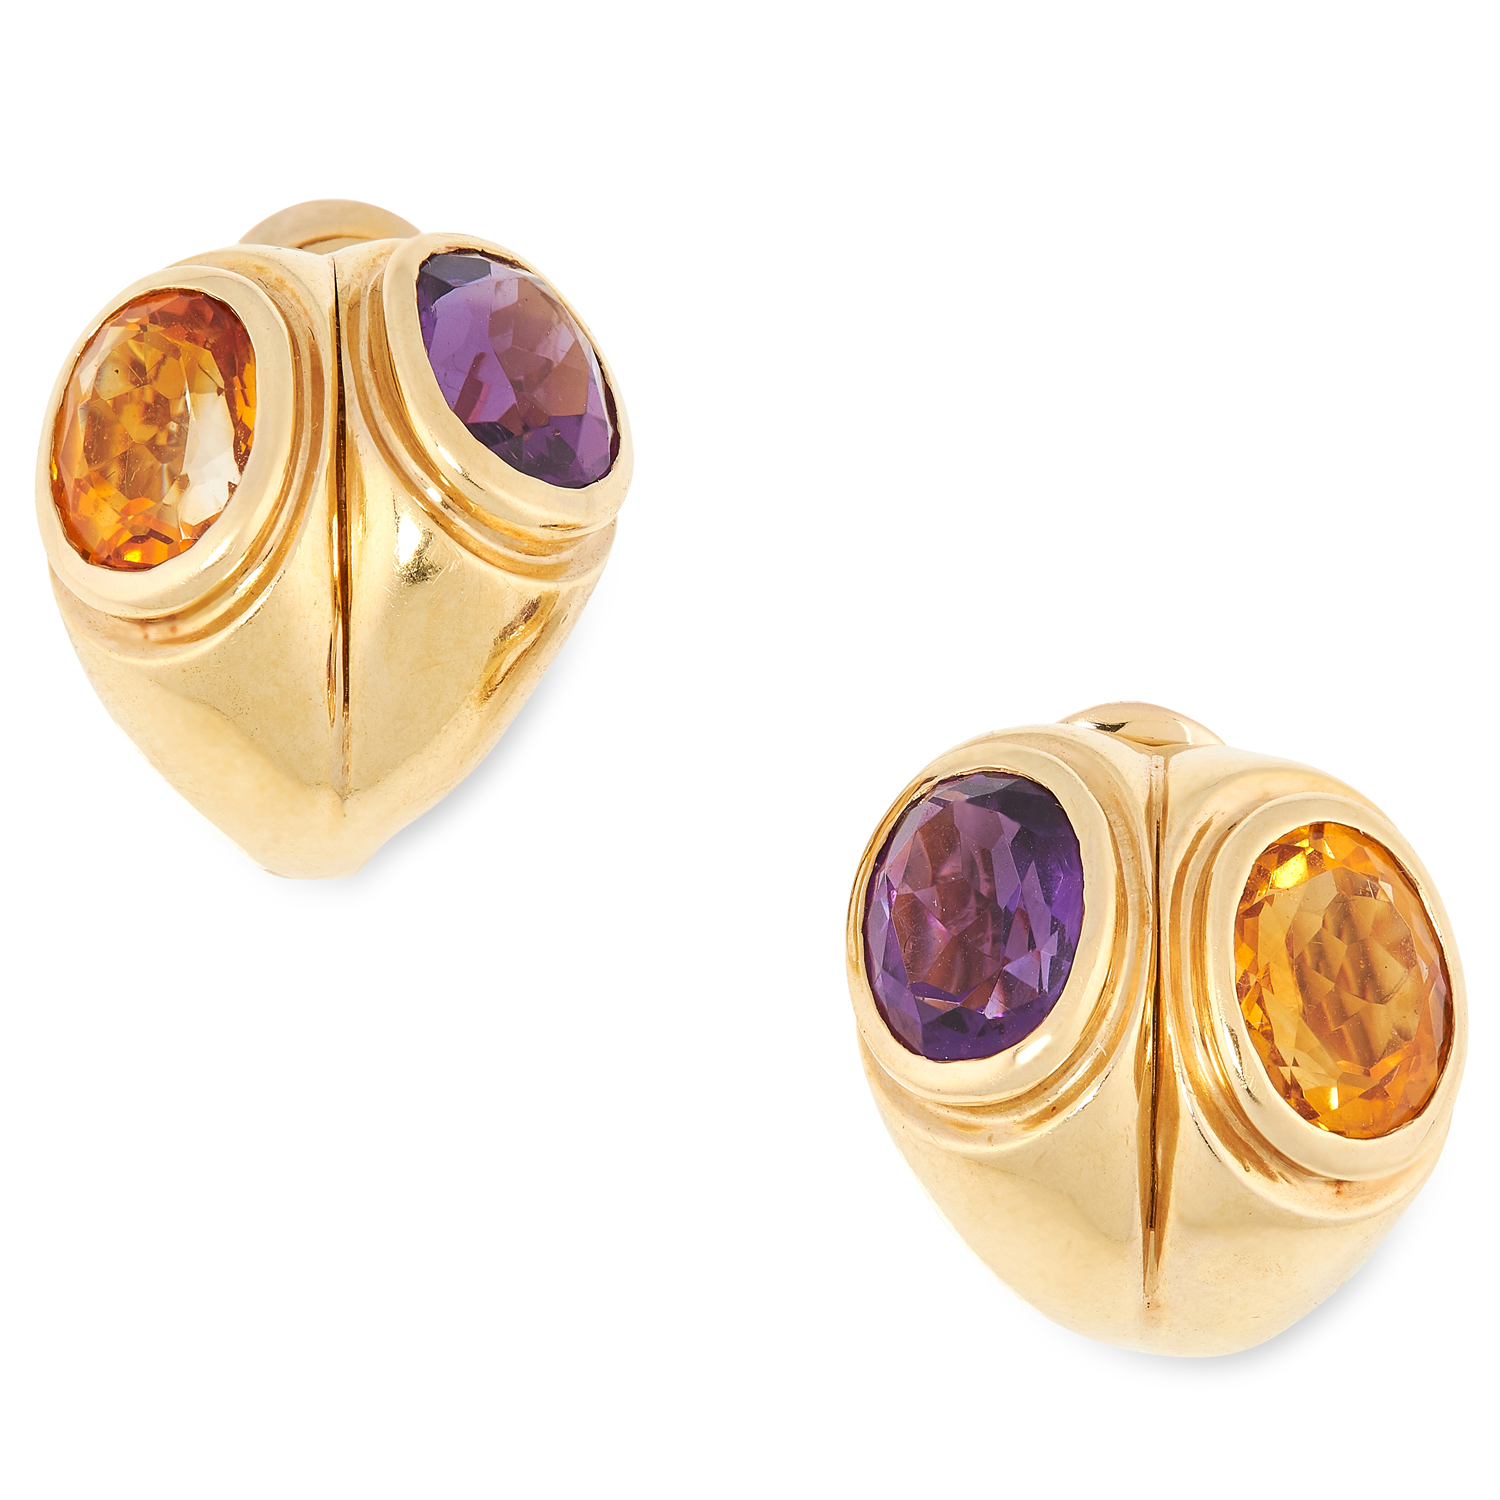 AN AMETHYST AND CITRINE RING AND EARRINGS SUITE, PARTLY BY TIFFANY & CO each set with oval cut - Image 4 of 5